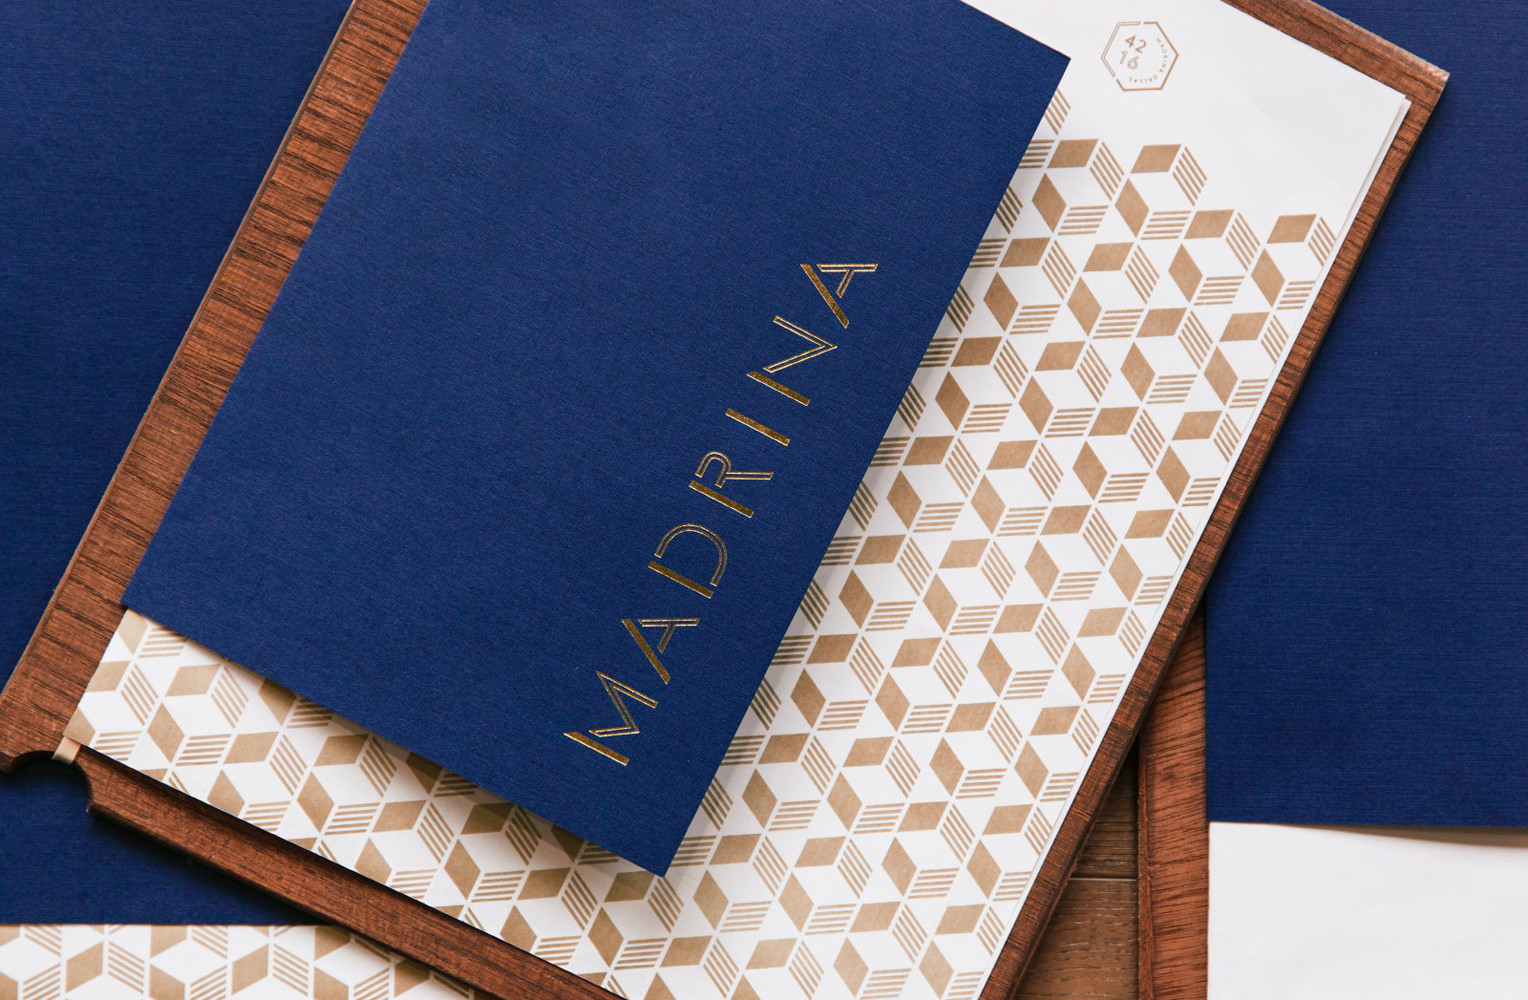 Brand identity and menu with gold foil detail for French inspired Mexican restaurant Madrina designed by Mast